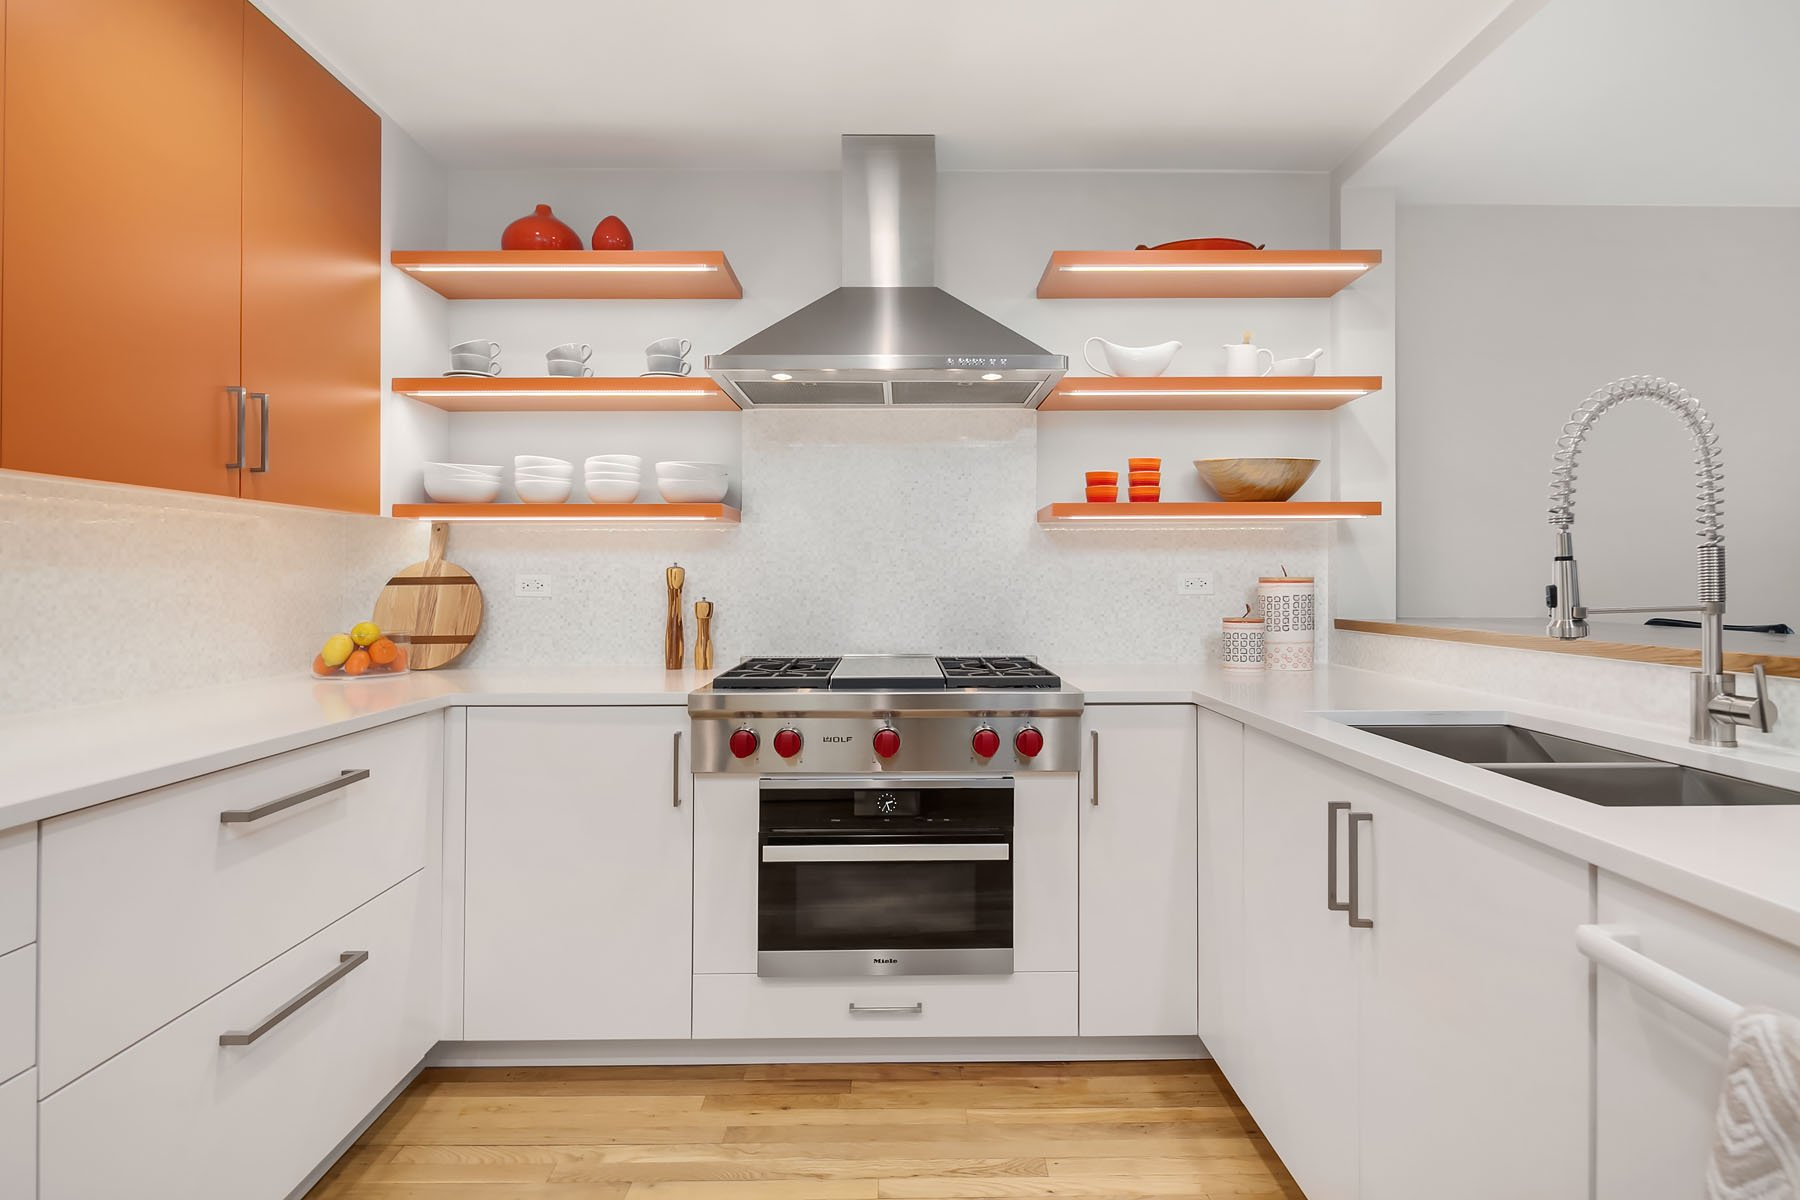 kitchen design chicago, kitchens chicago, hannah tindall, interior design, horseshoe kitchen, horseshoe layout